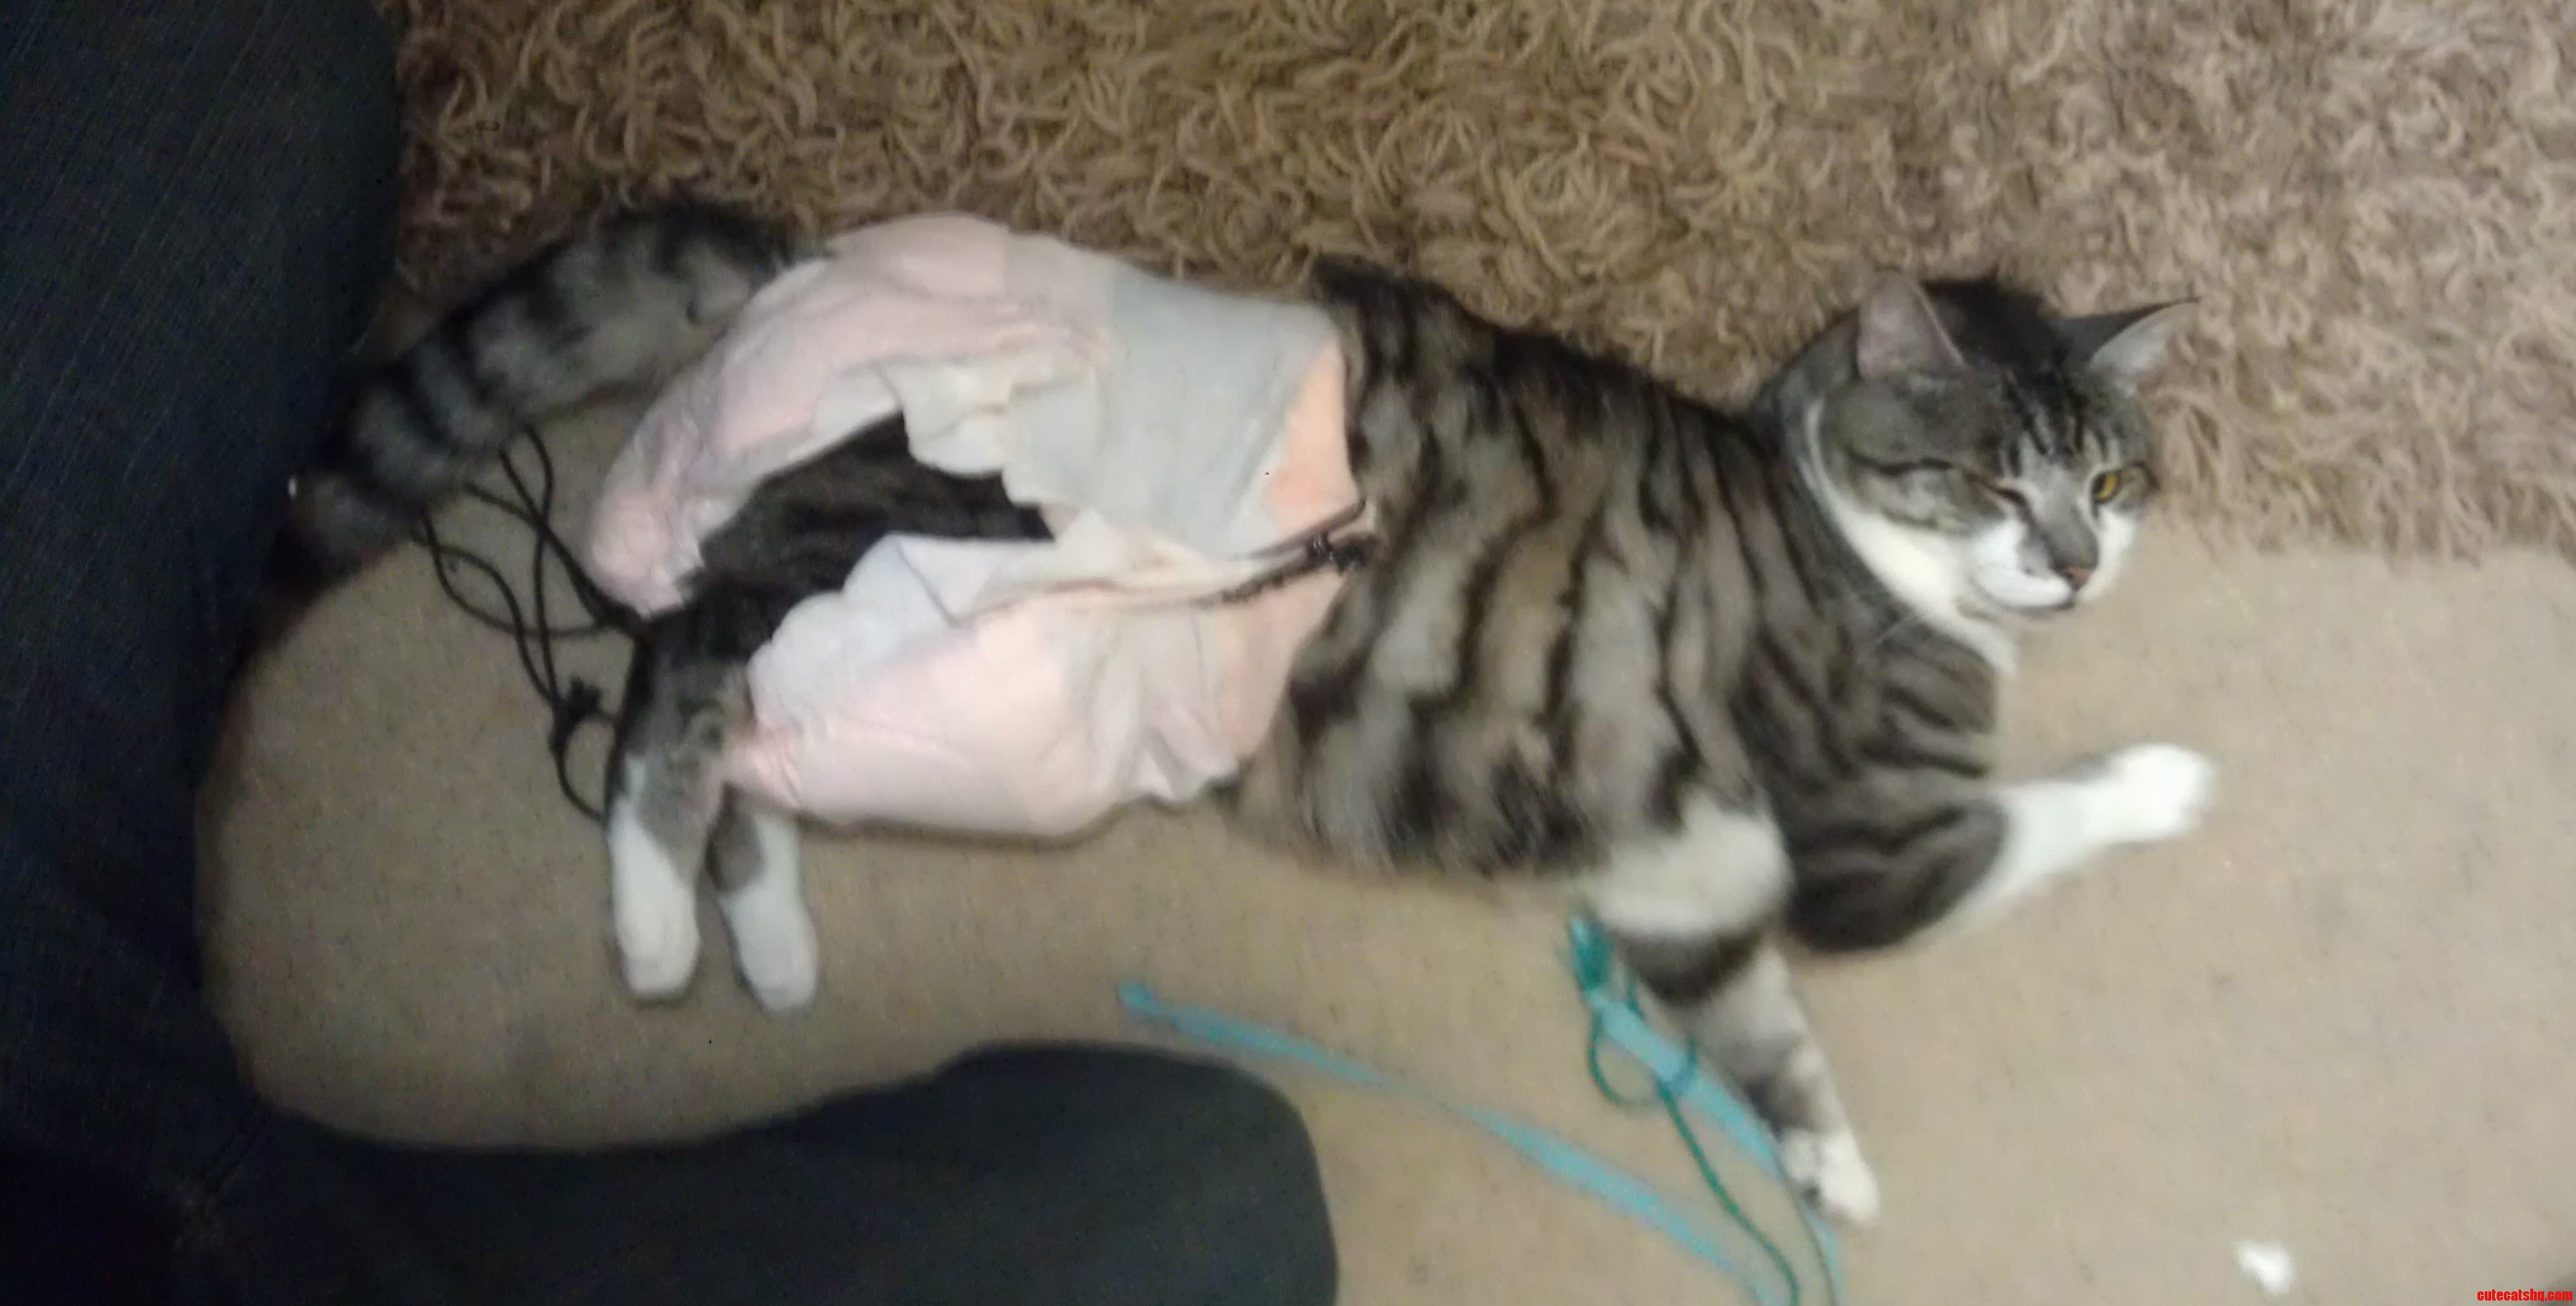 I Put A Diaper On My Cat And He Winked At Me. We Totally Had A Moment.